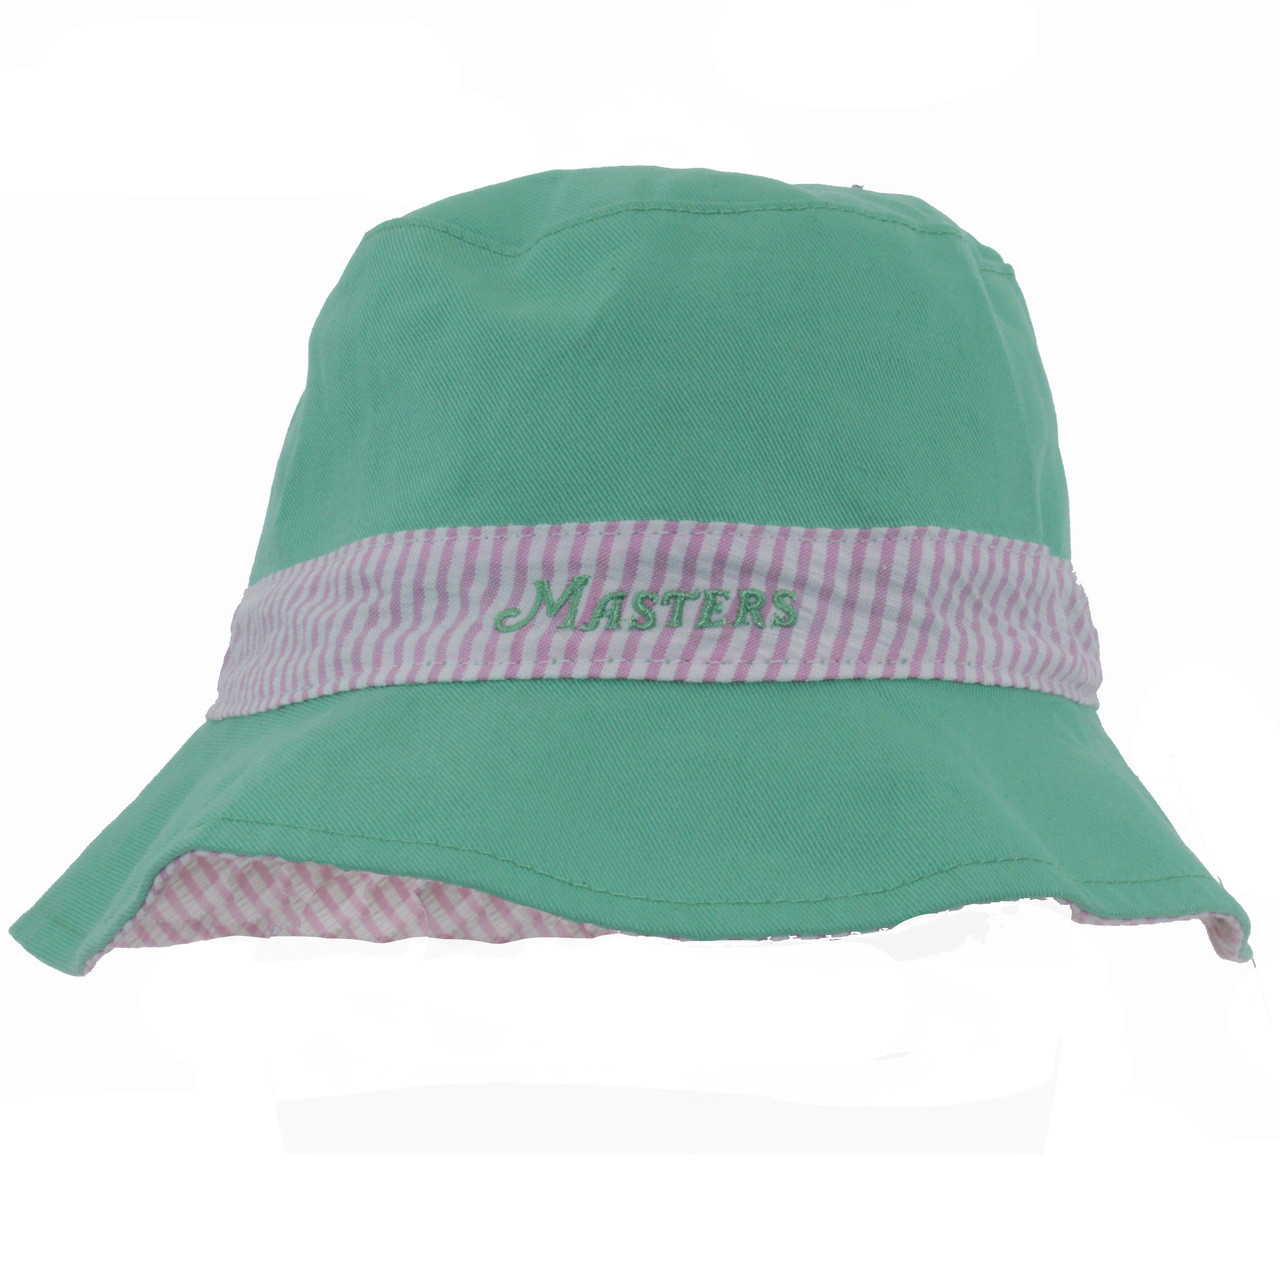 5502298db3f Masters Kids Pink   Green Reversible Bucket Hat